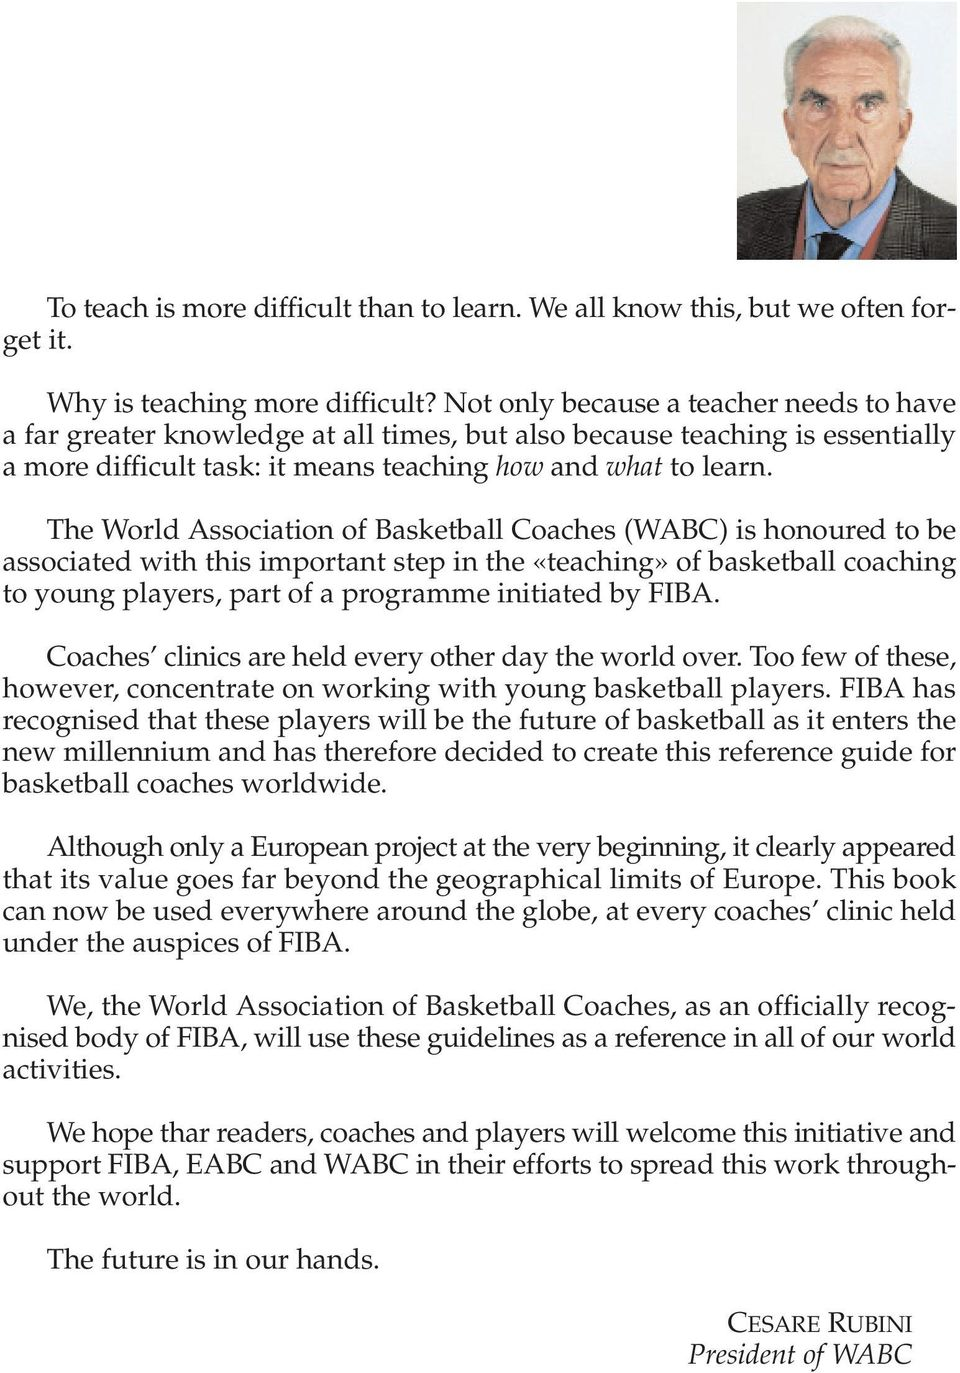 The World Association of Basketball Coaches (WABC) is honoured to be associated with this important step in the «teaching» of basketball coaching to young players, part of a programme initiated by